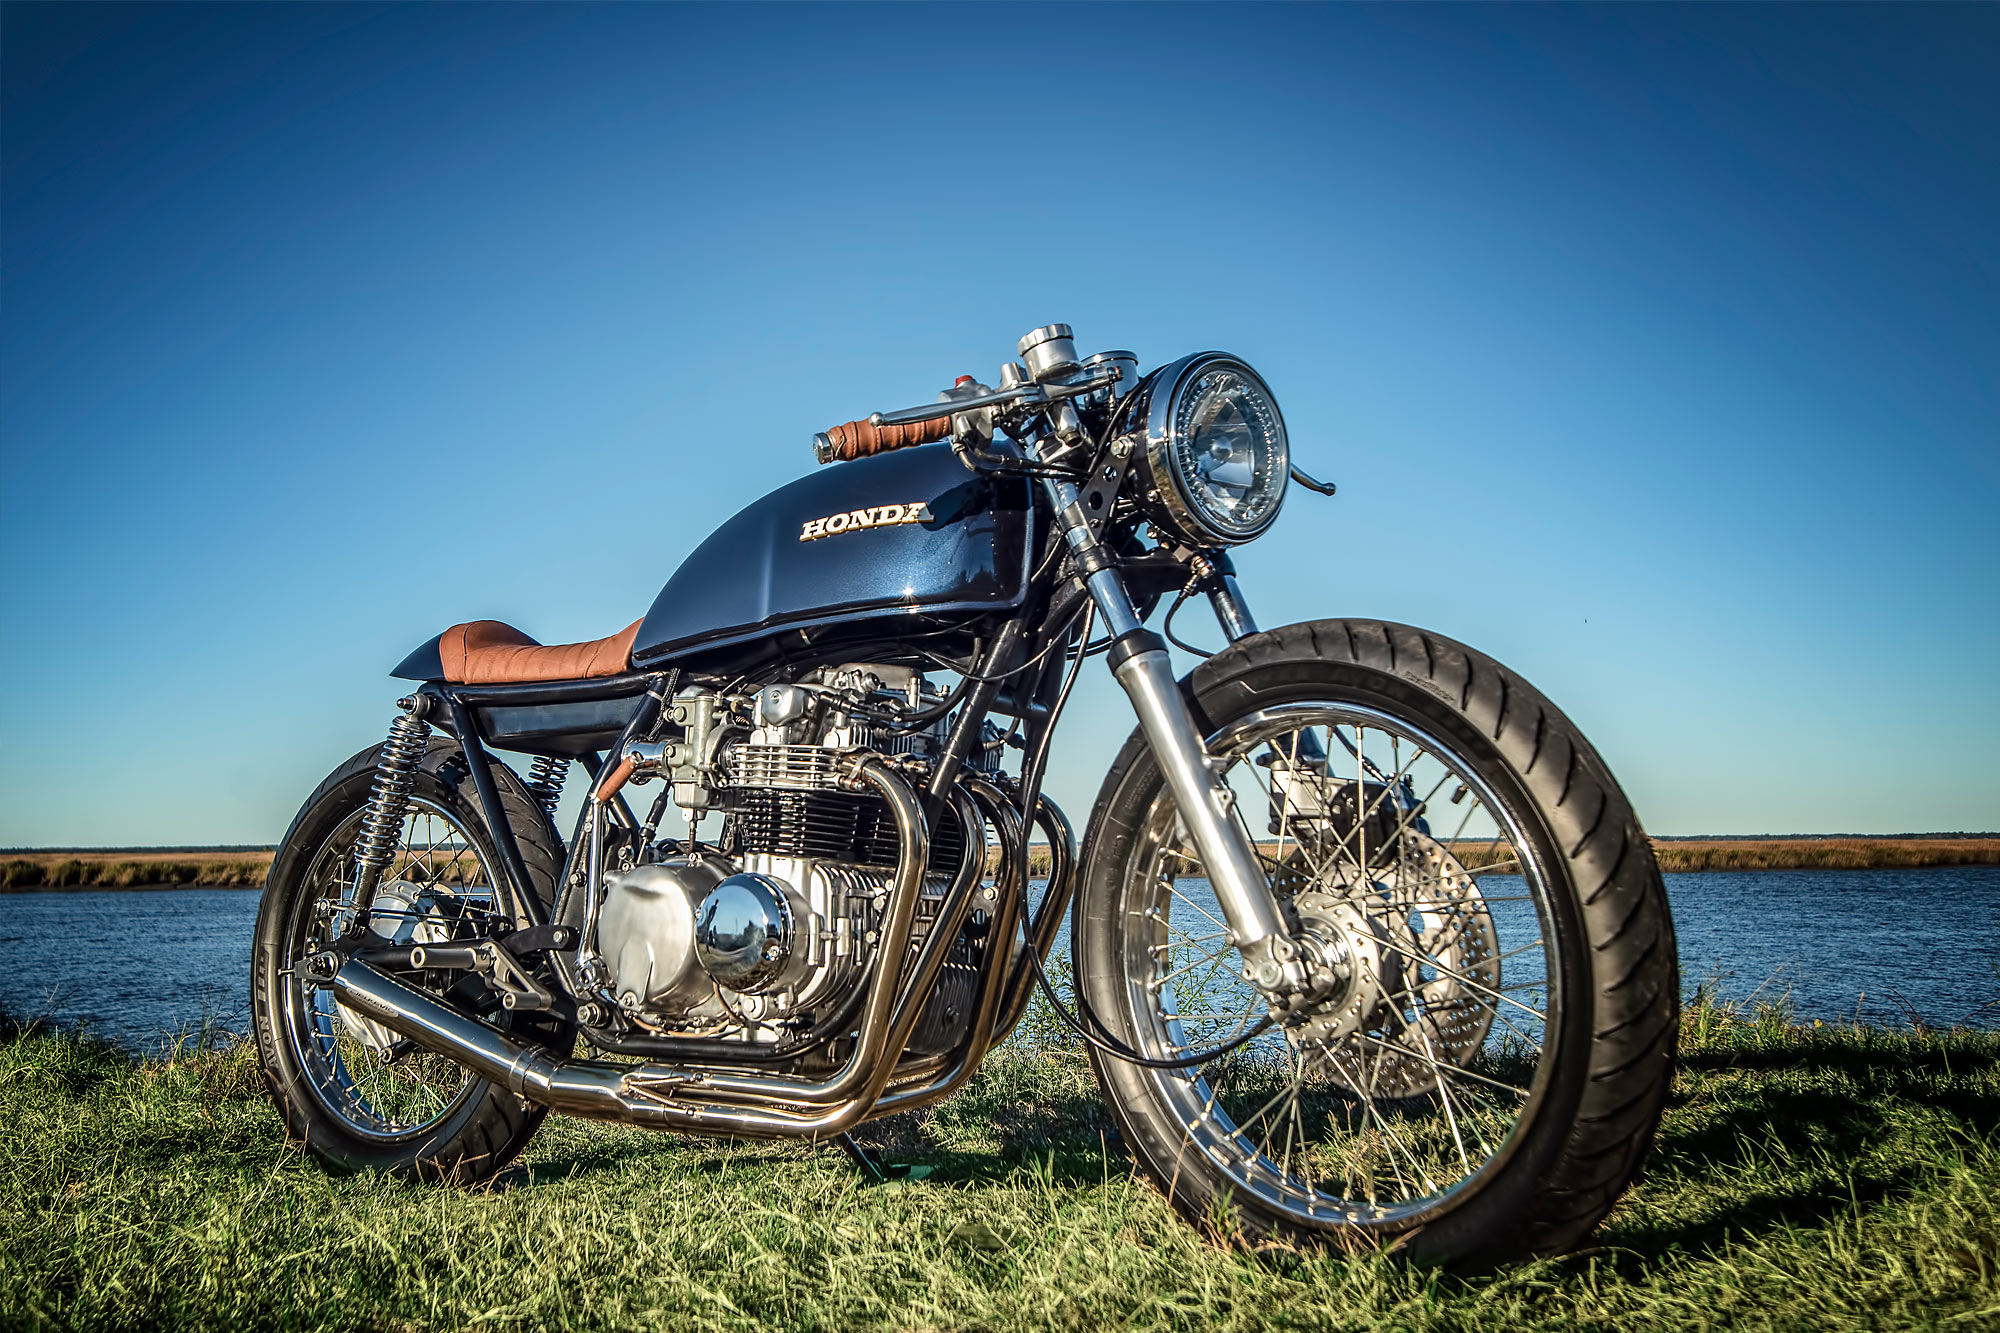 WAR HORSE. David Meyers' Majestic 'Balios' Honda CB550 ...